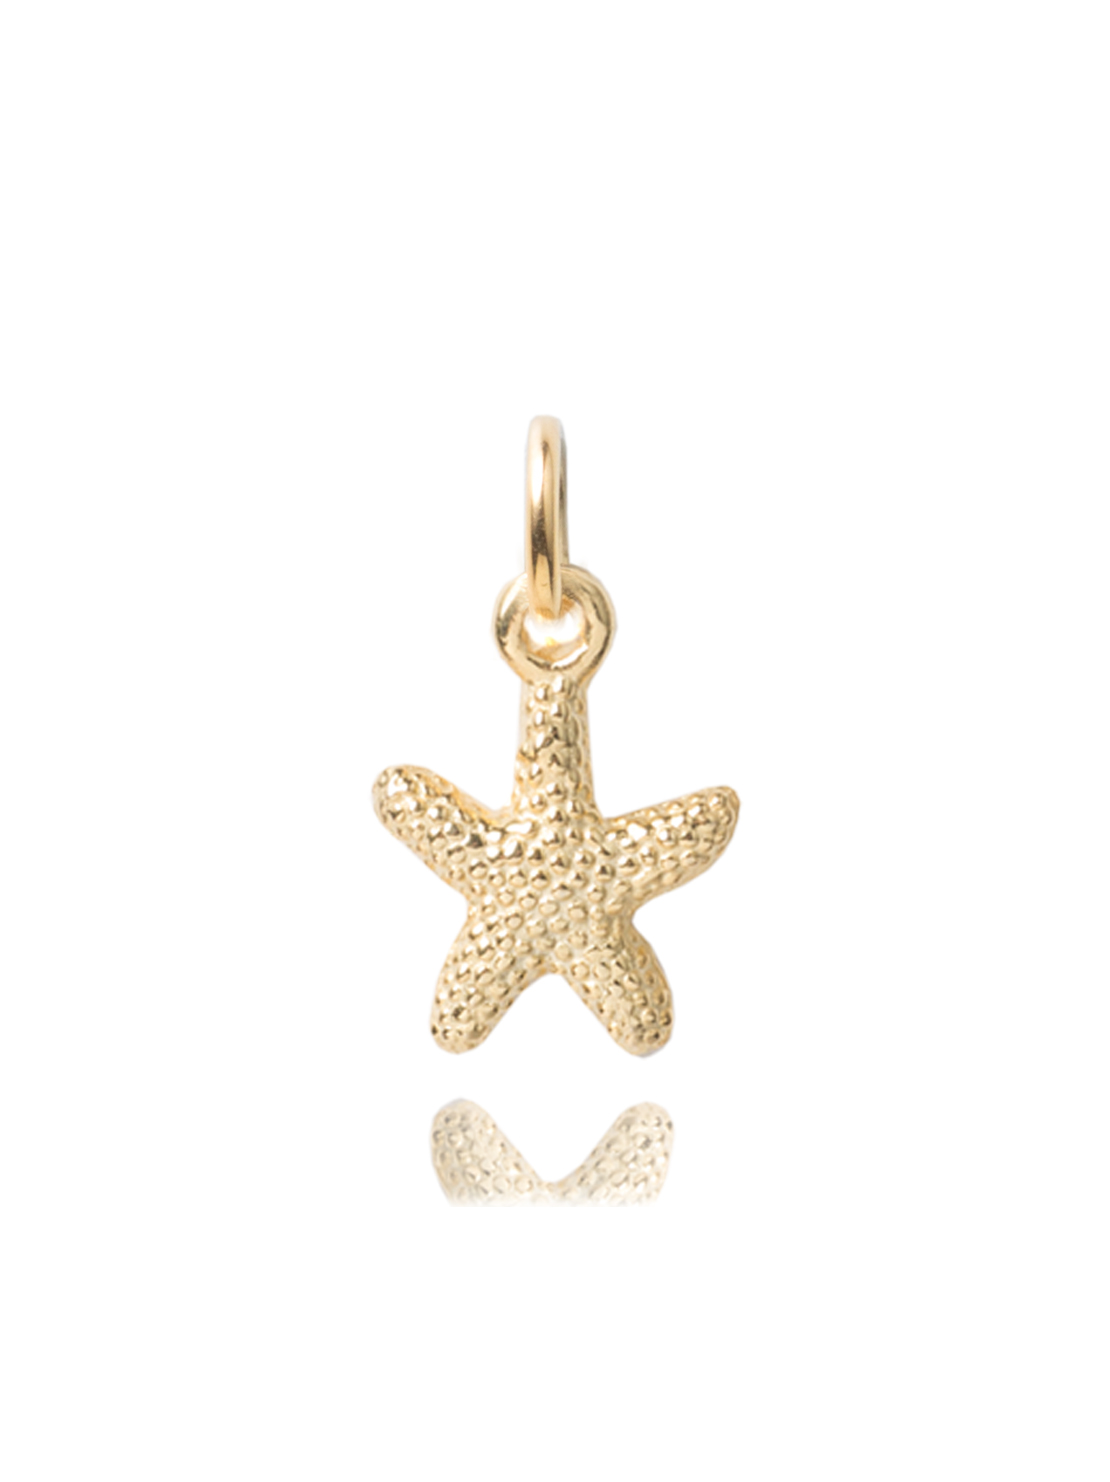 Gold Starfish Charm